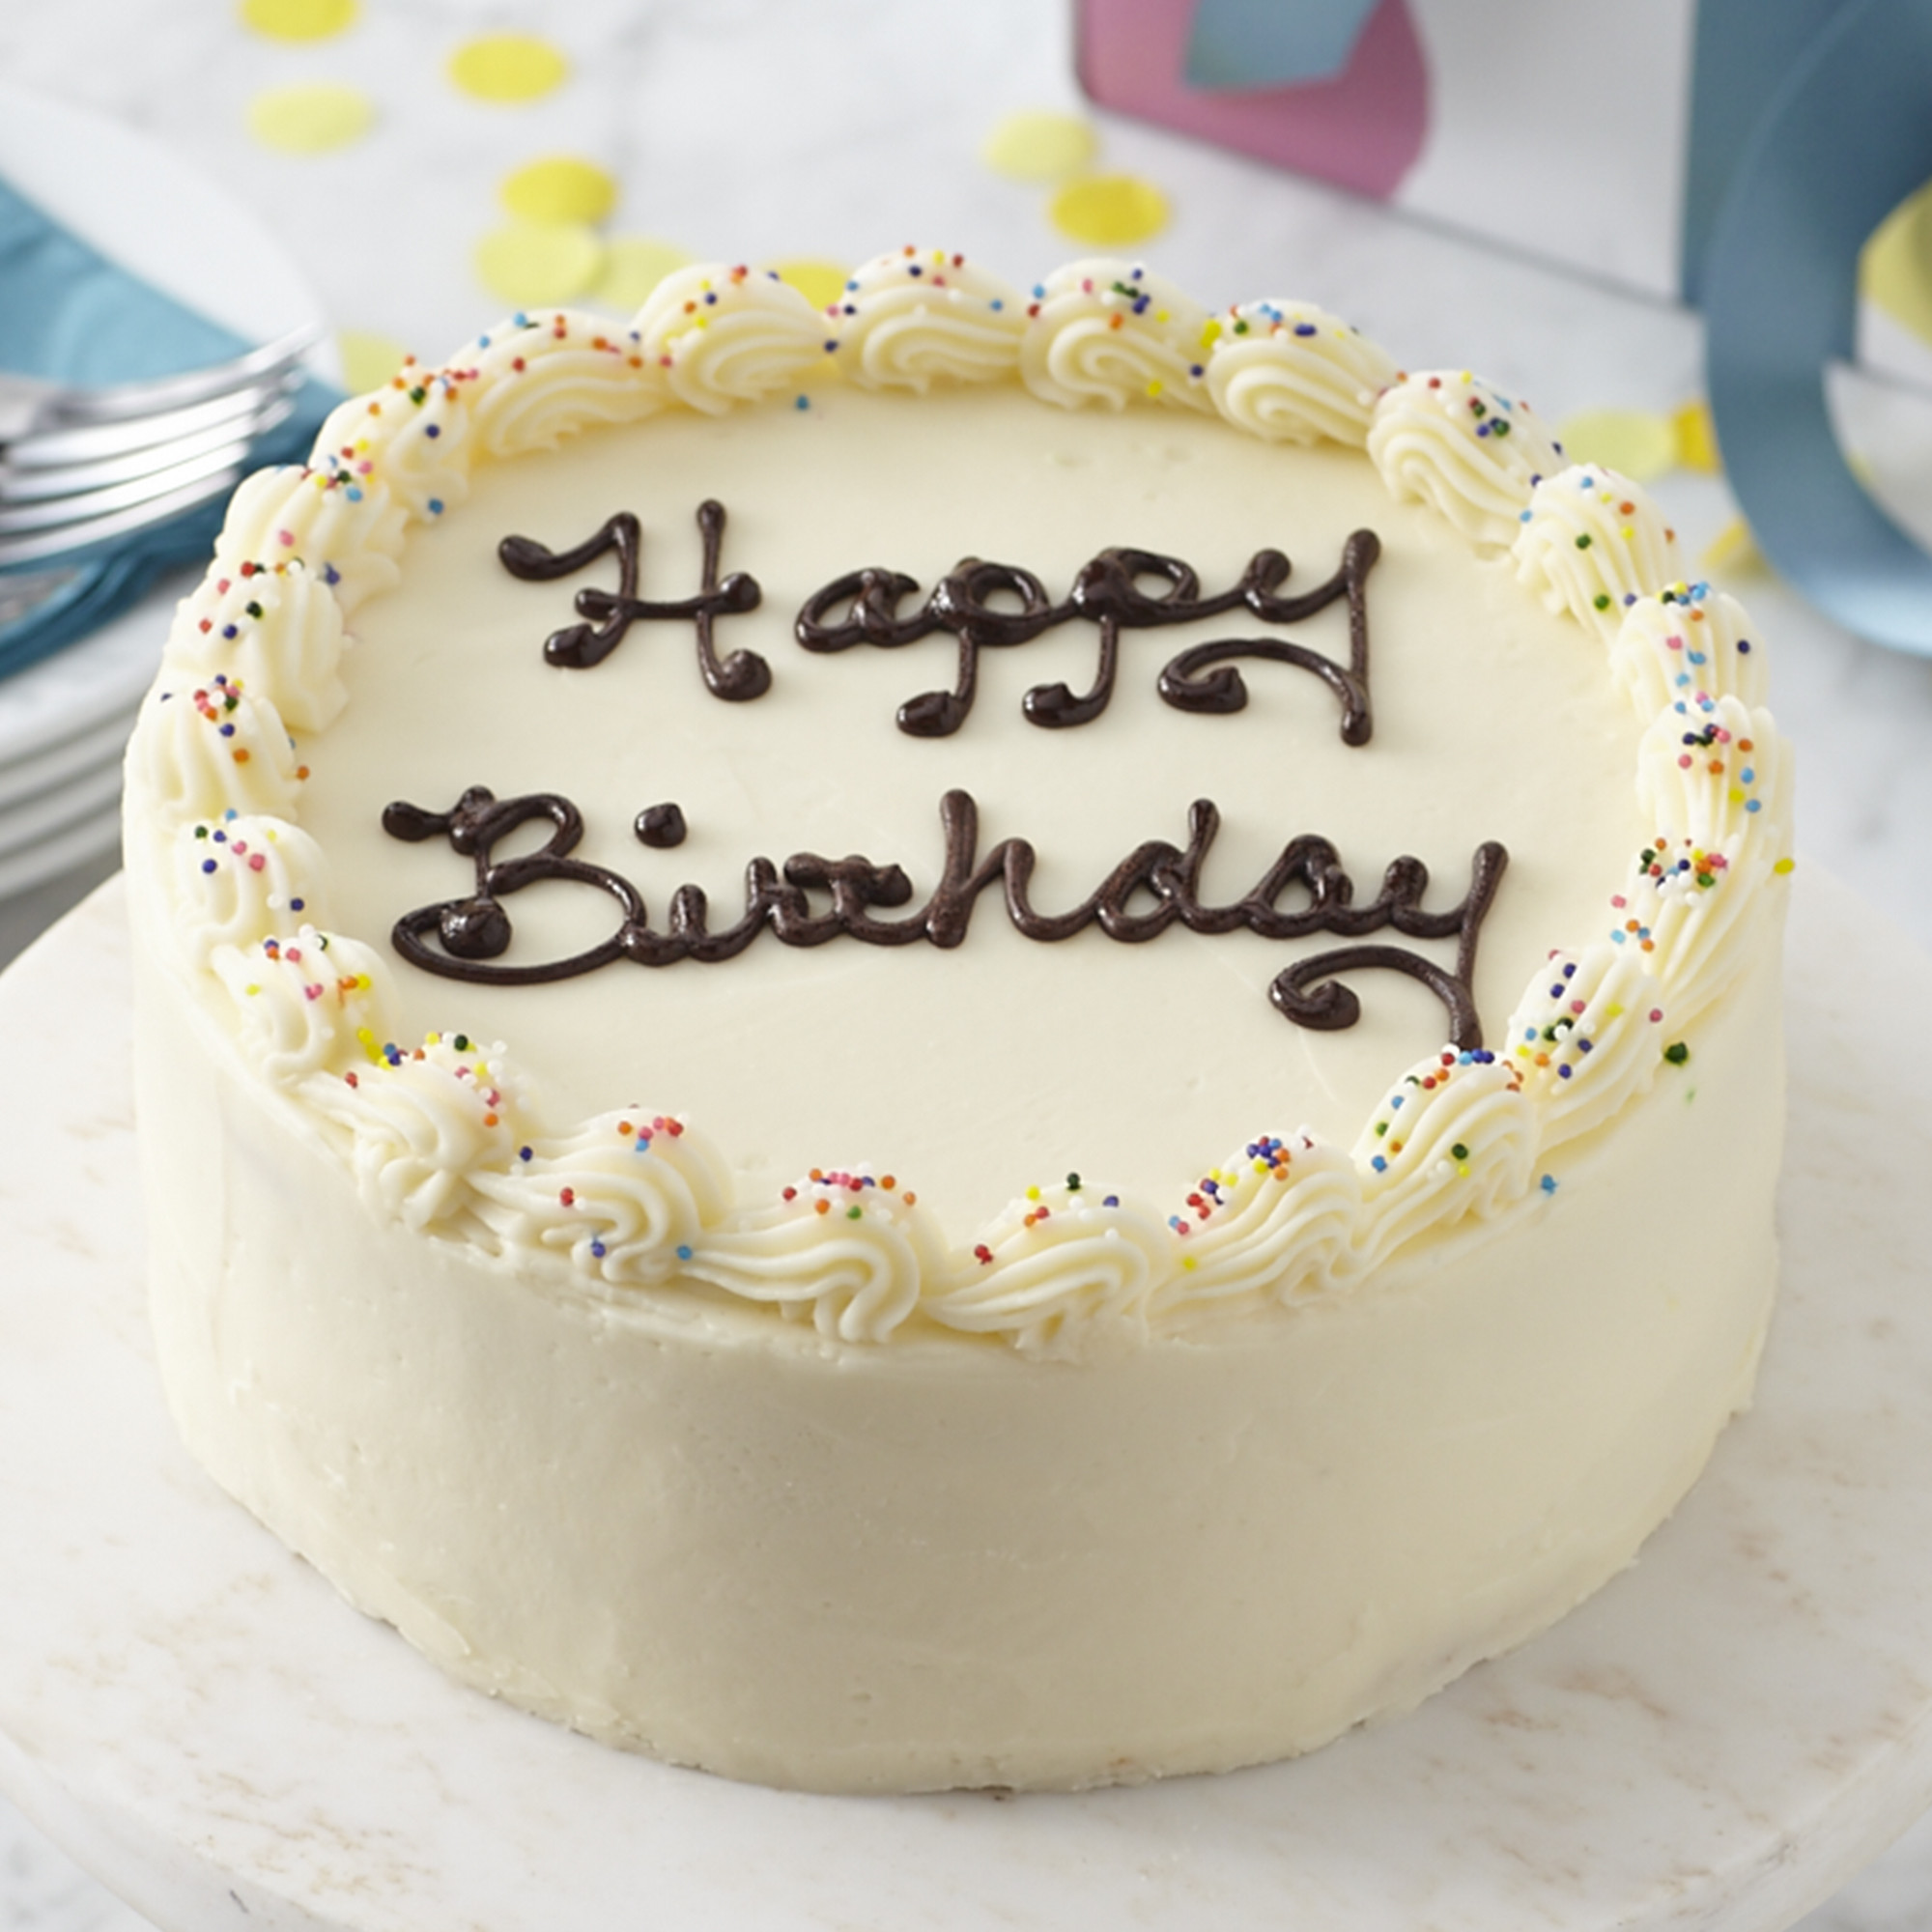 Best ideas about Cake Birthday . Save or Pin Birthday Celebration Cake Now.